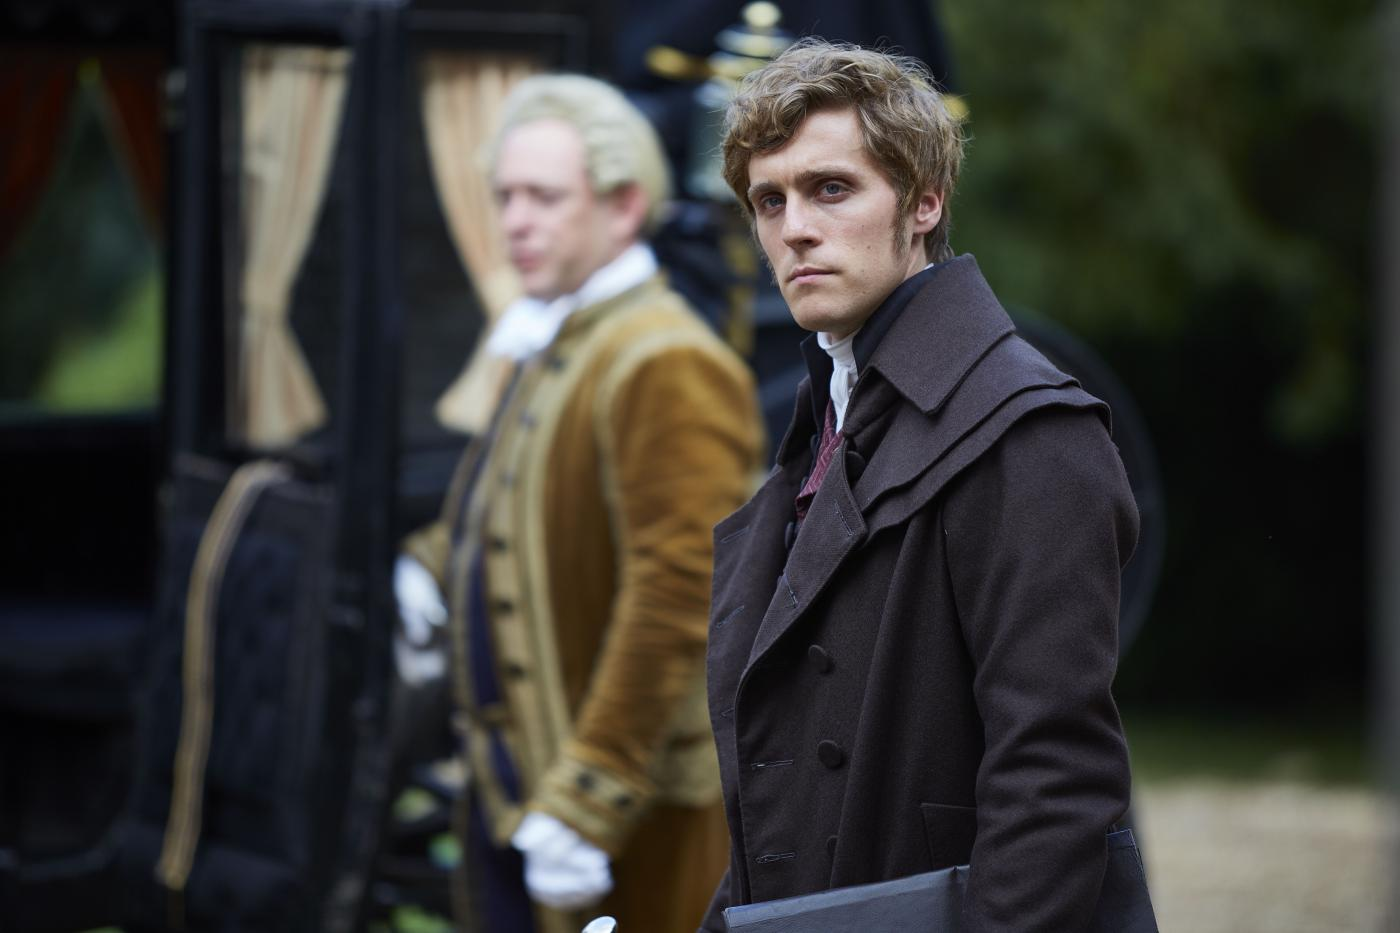 Jack Farthing as George in Poldark. Photo: Mammoth Screen for BBC and MASTERPIECE